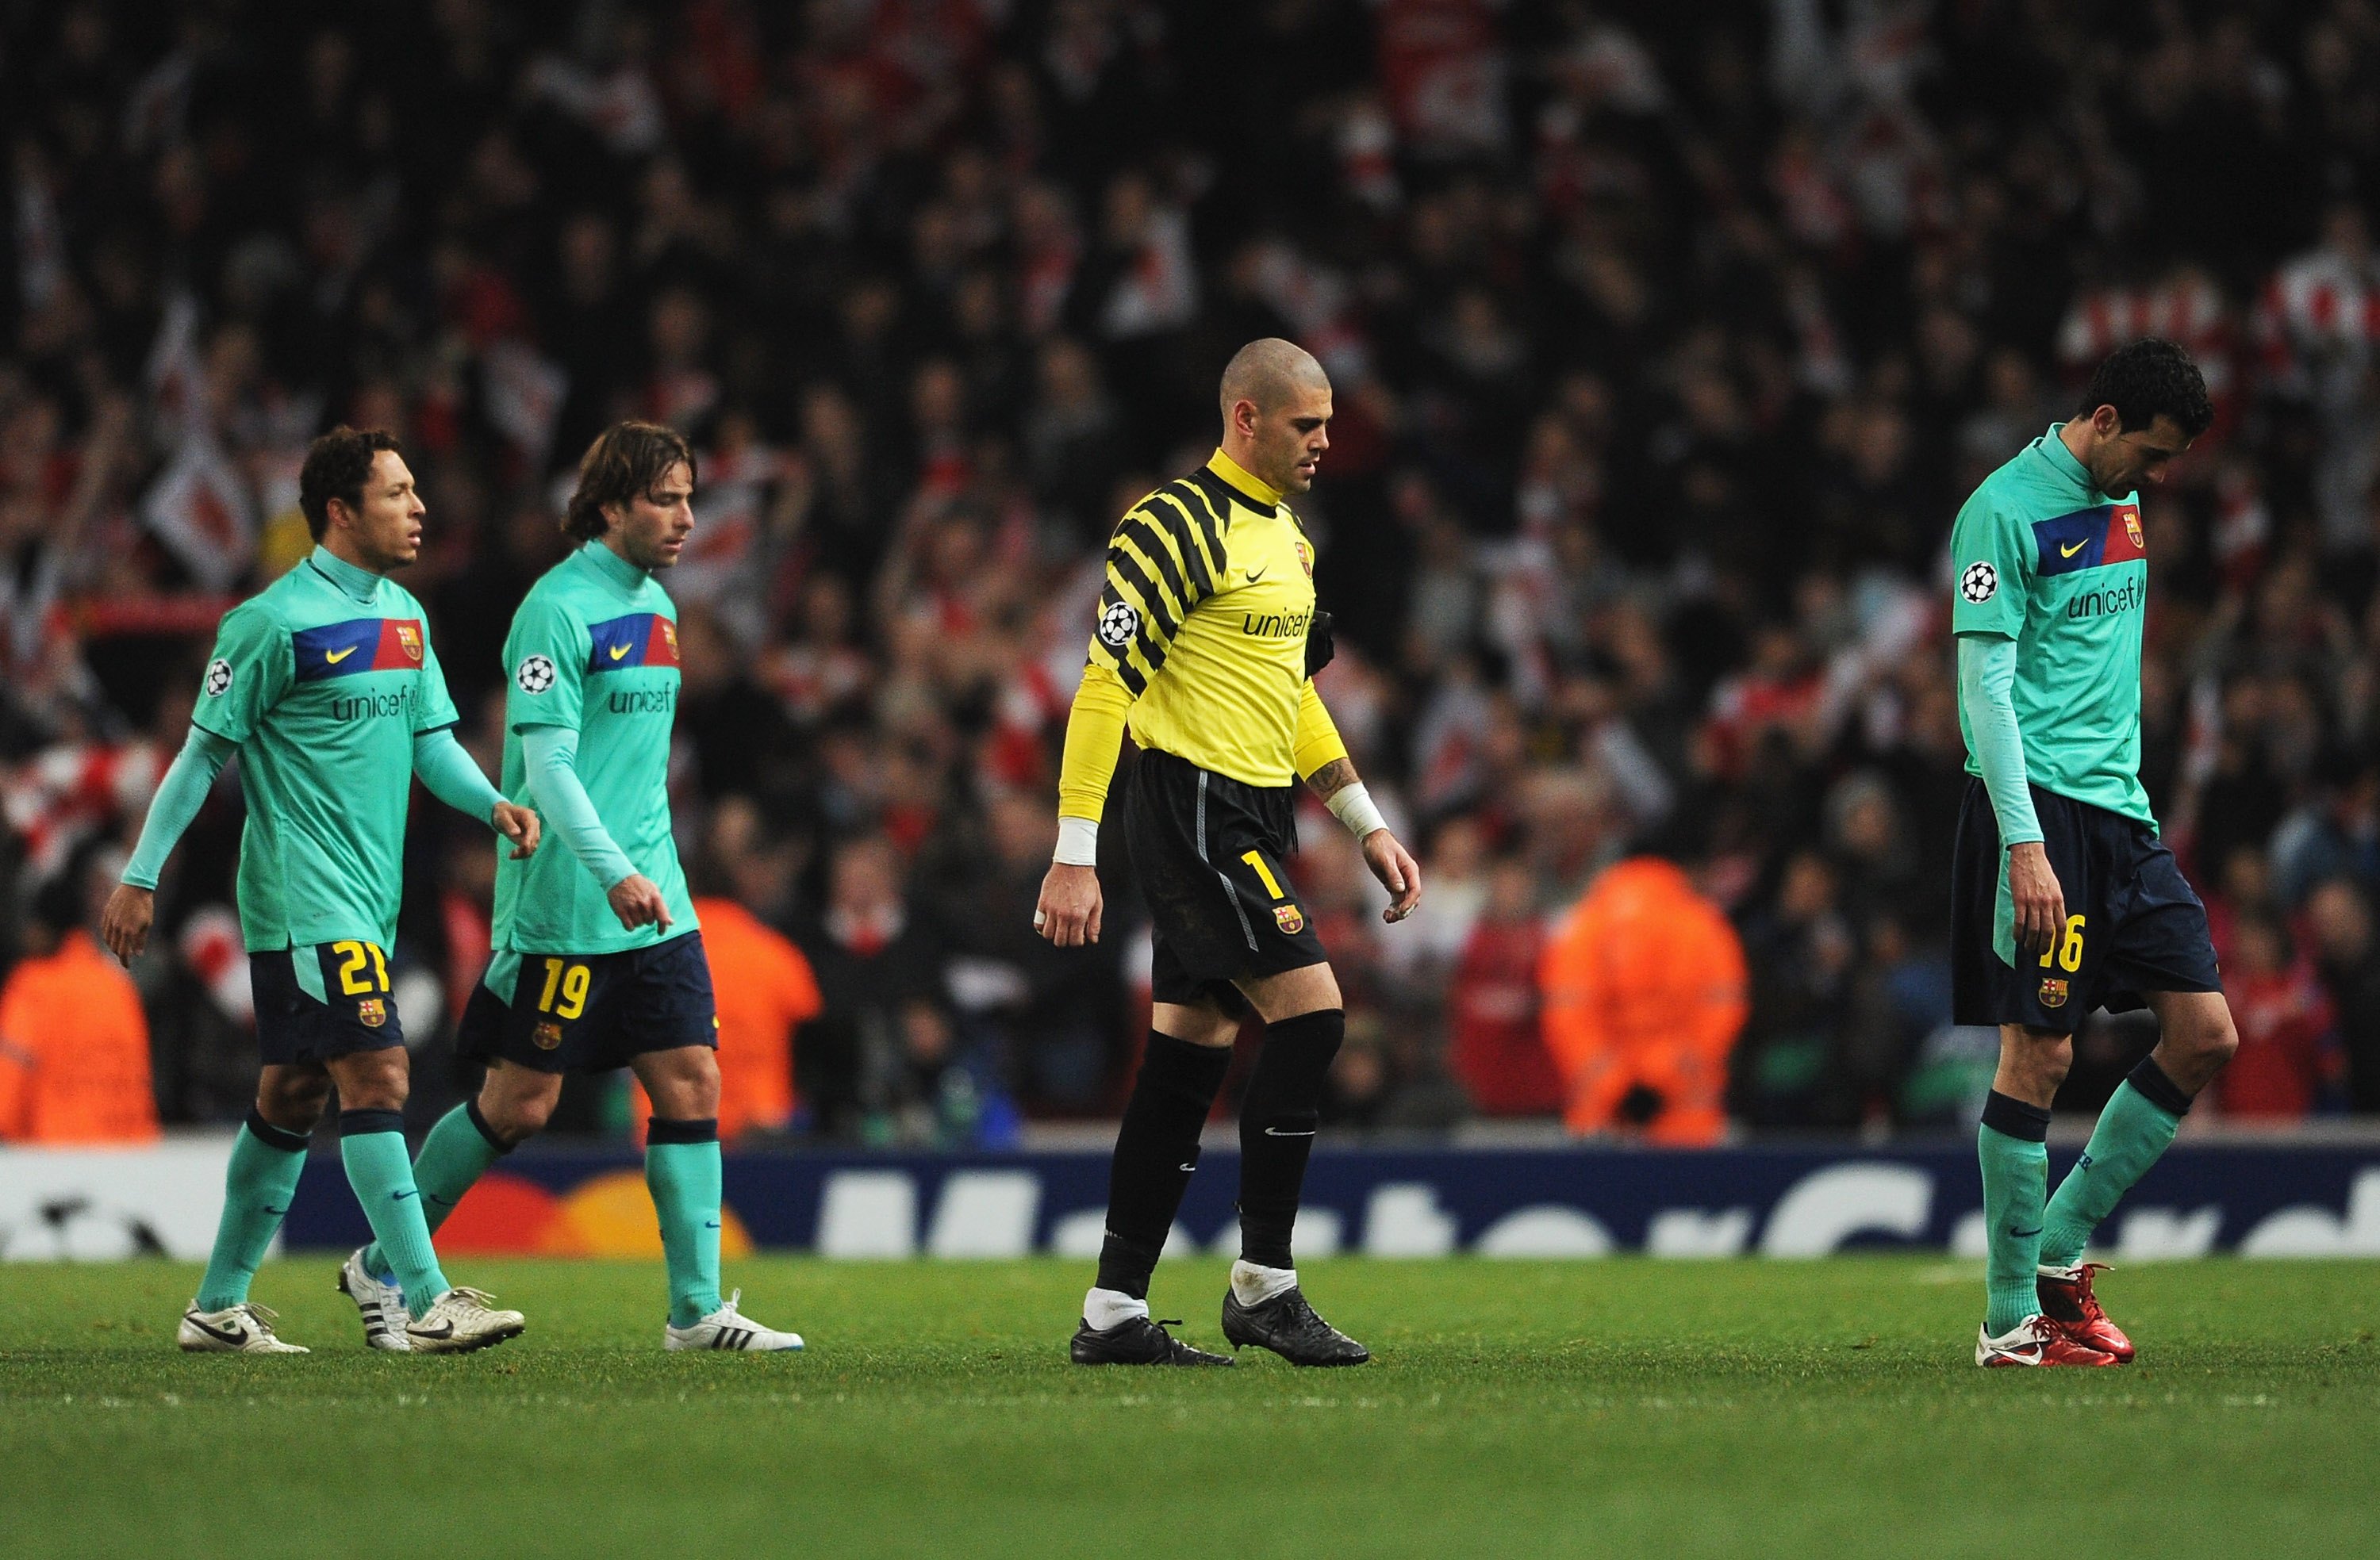 LONDON, ENGLAND - FEBRUARY 16:  Goalkeeper Victor Valdes of Barcelona looks dejected with team mates after the UEFA Champions League round of 16 first leg match between Arsenal and Barcelona at the Emirates Stadium on February 16, 2011 in London, England.